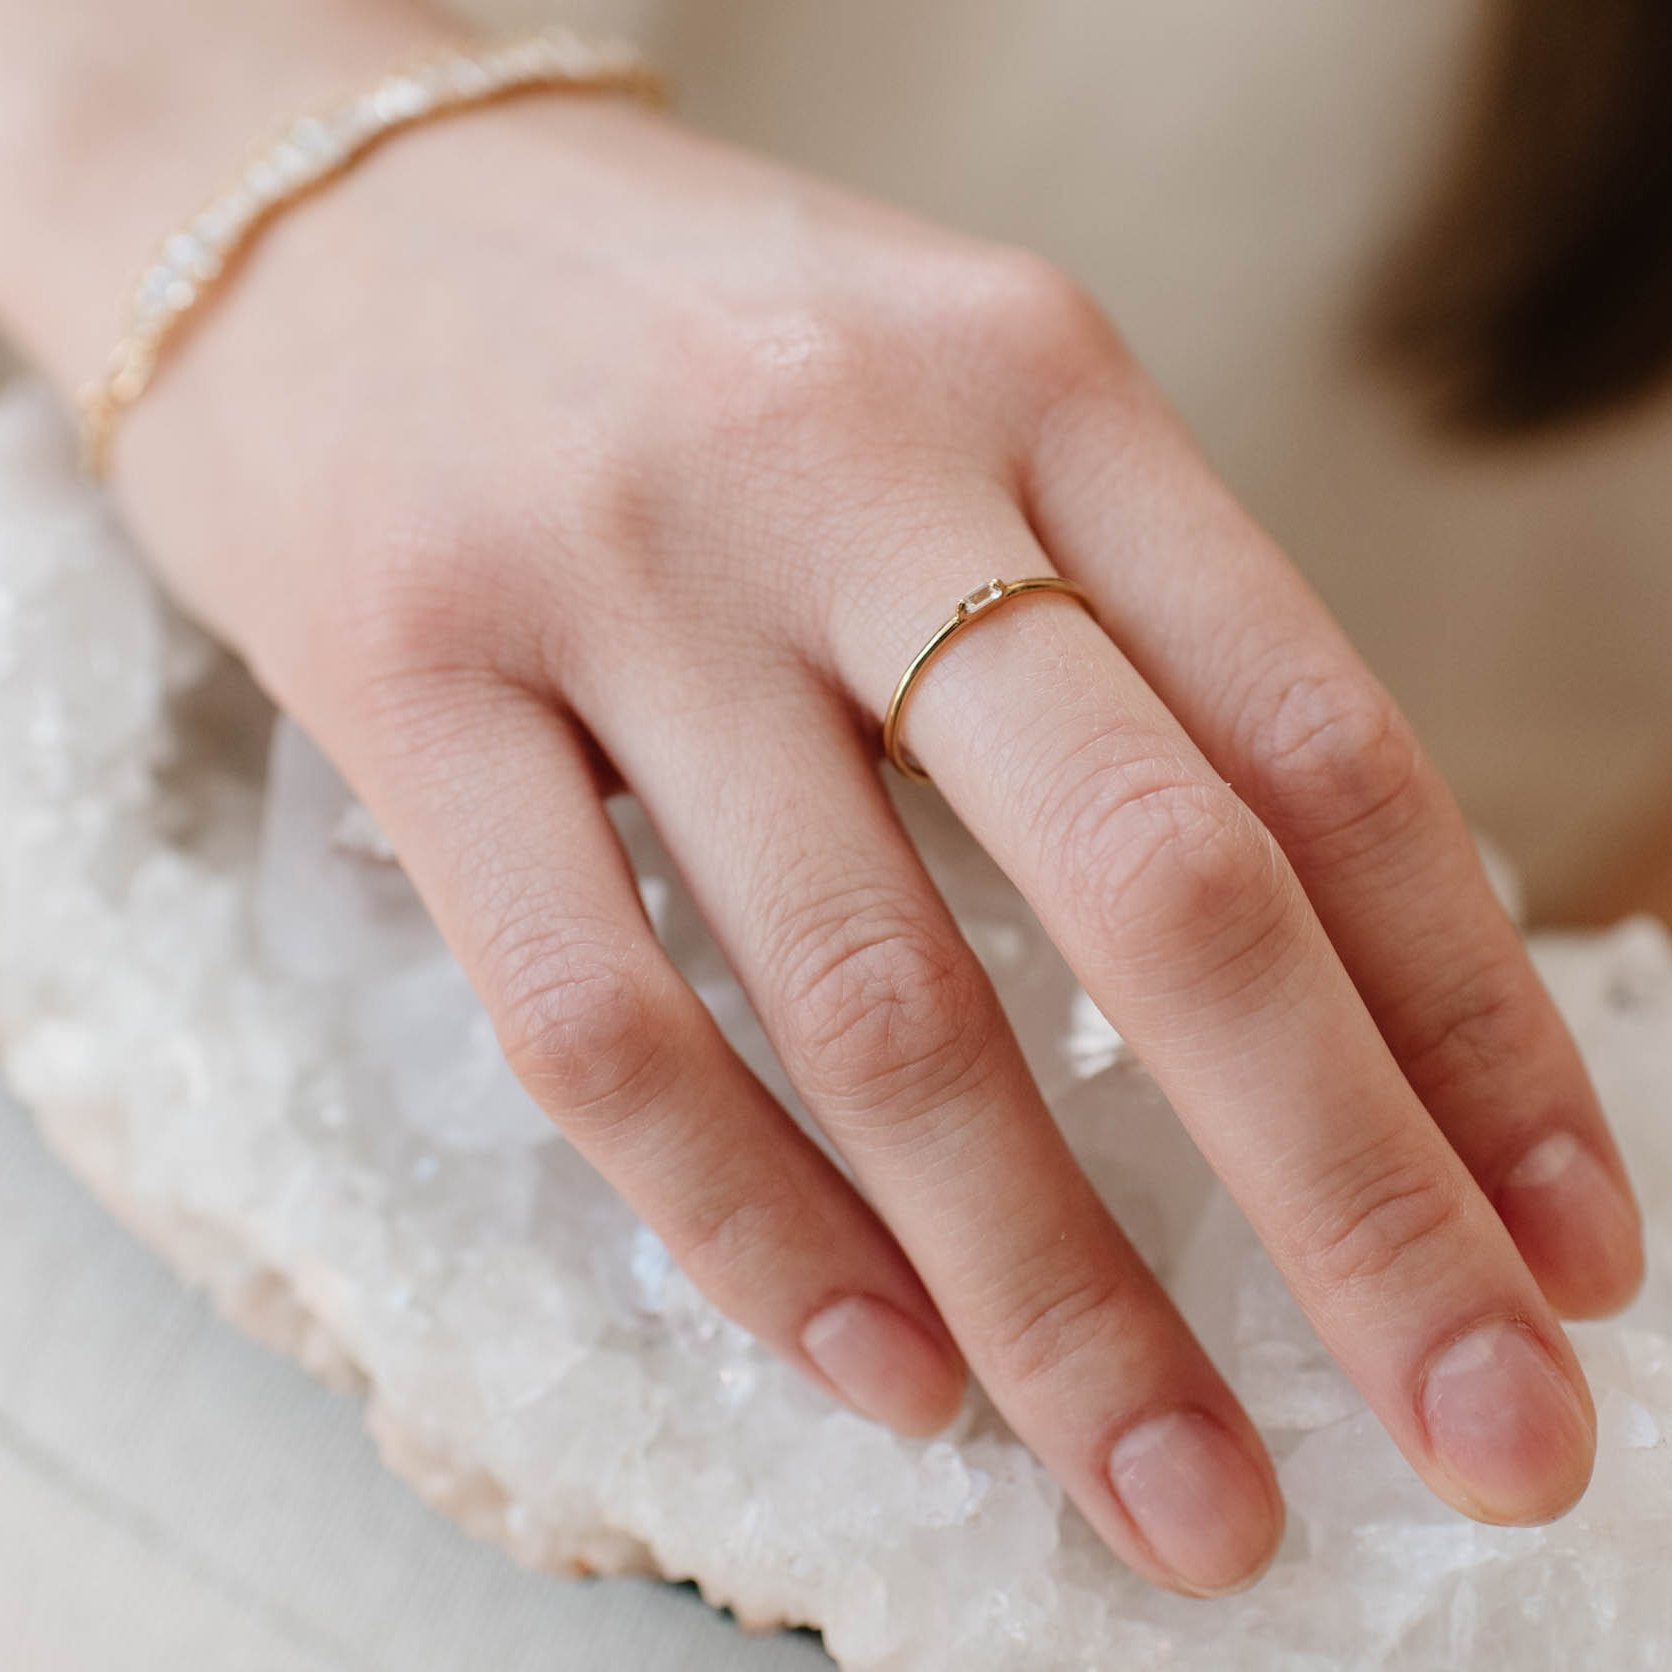 Loyal Solitaire Stacking Ring - White Topaz & Gold - SO PRETTY CARA COTTER